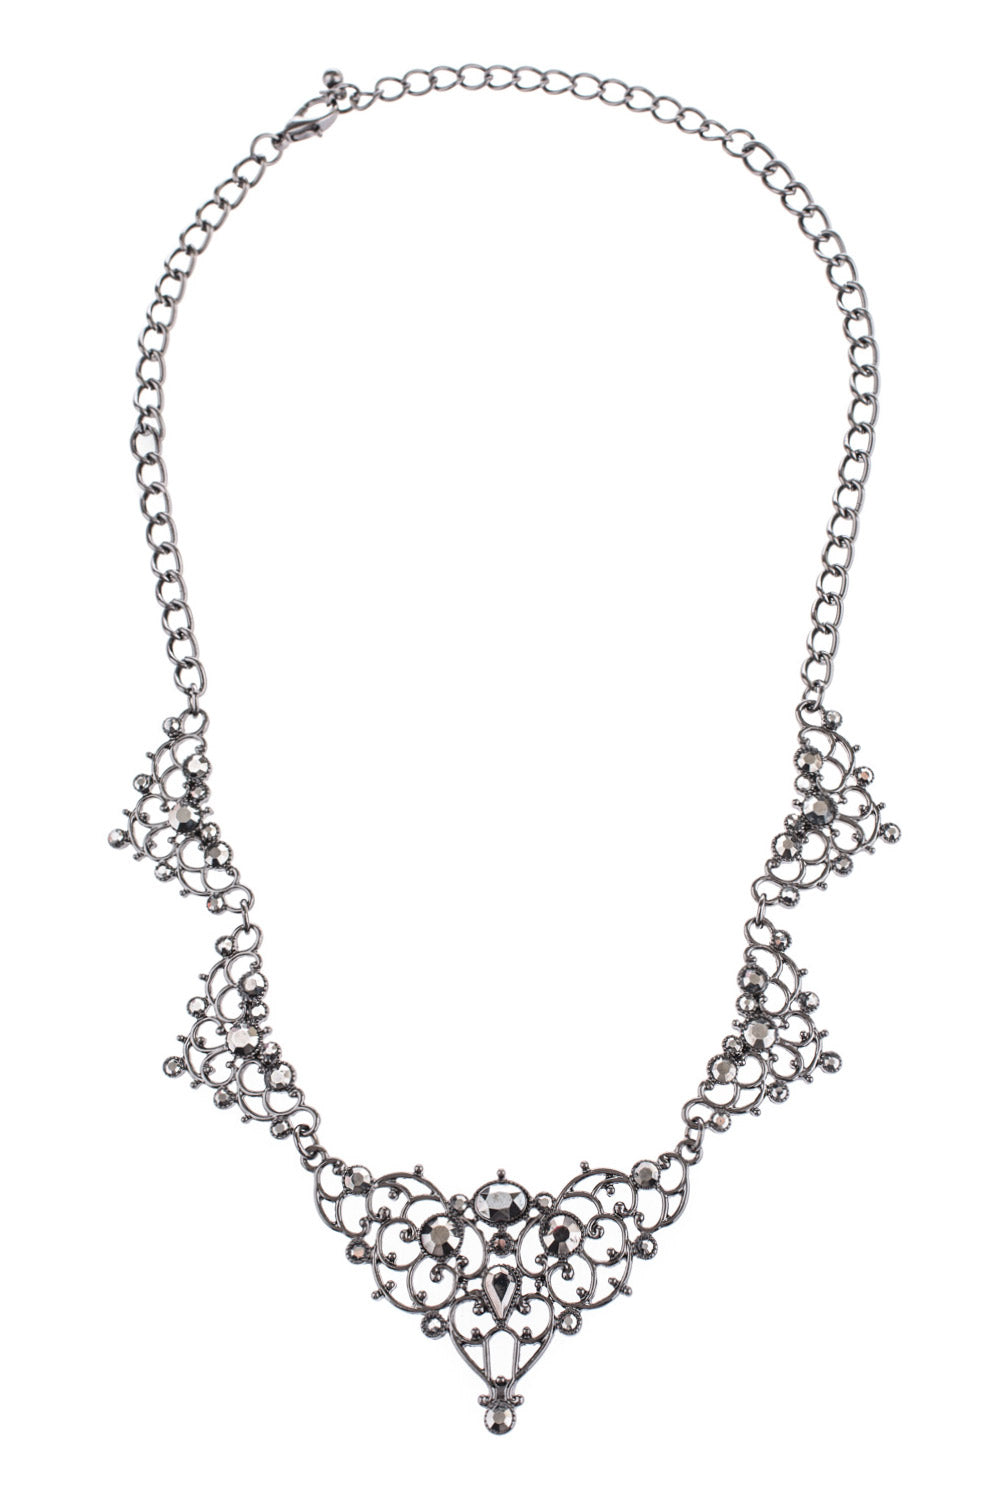 Type 2 Lovely Lace Necklace